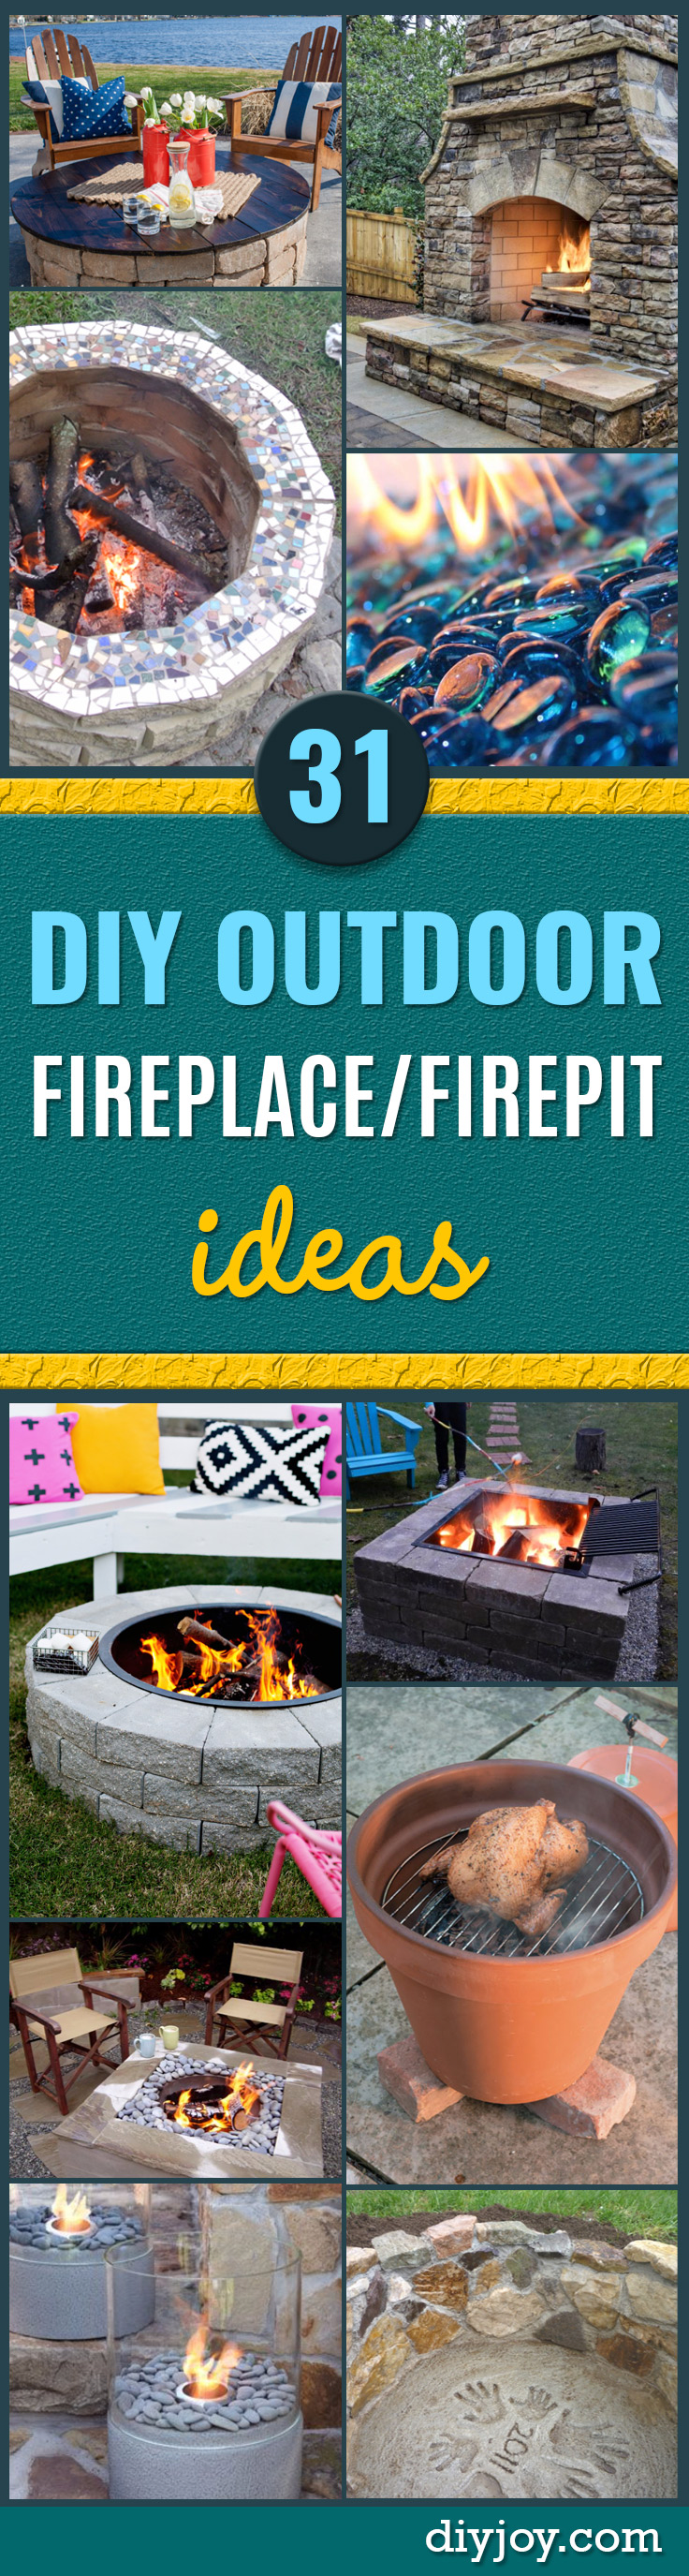 31 DIY Outdoor Fireplace and Firepit Ideas - photo#21